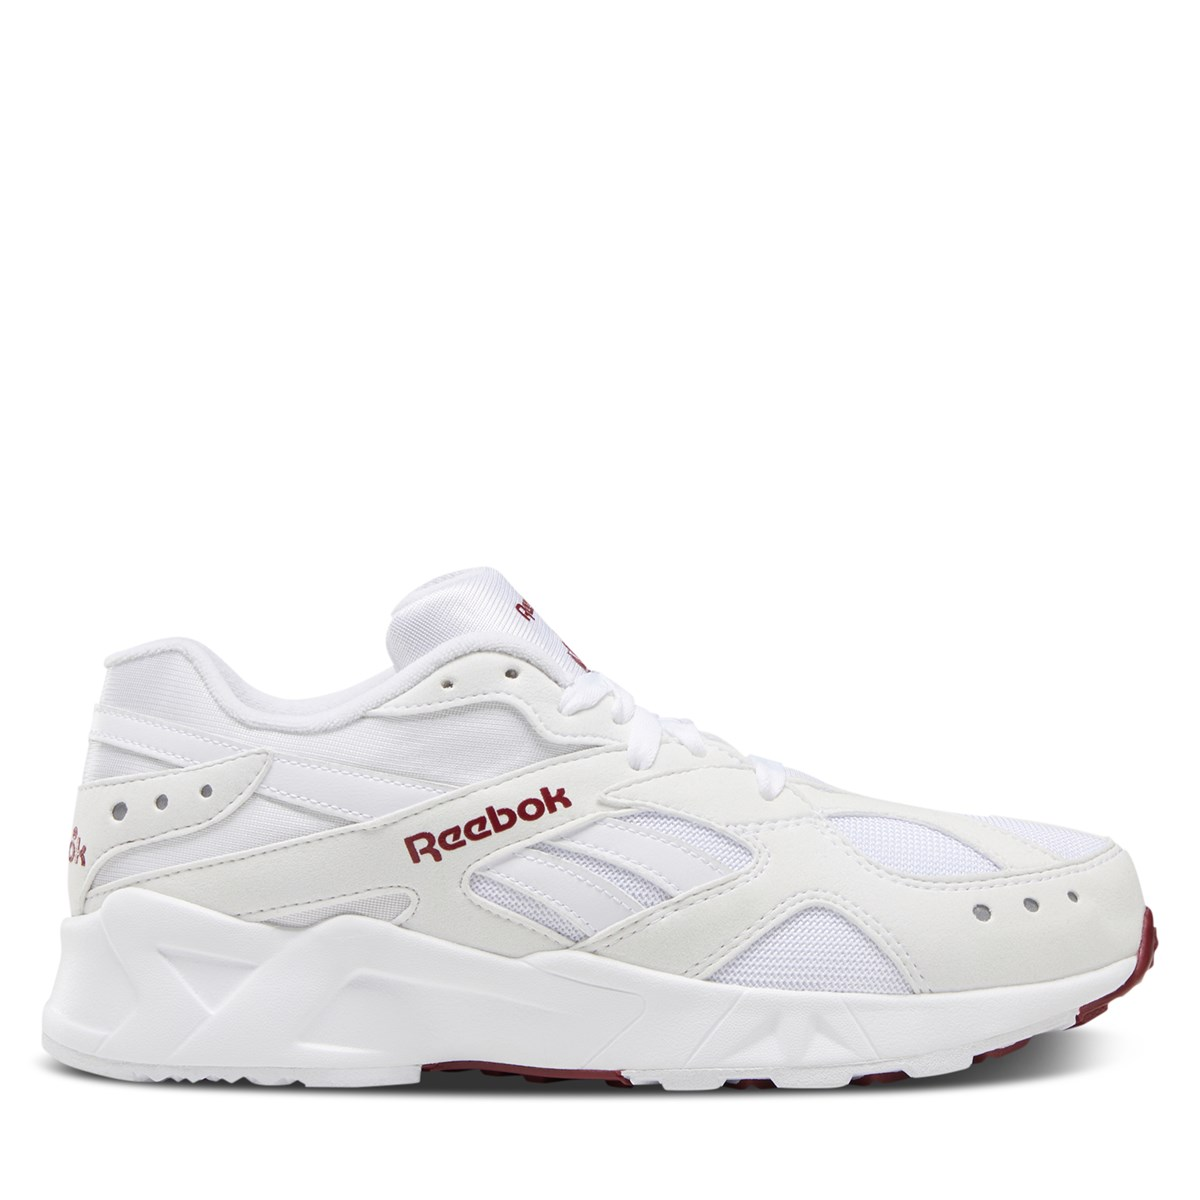 Men's Aztrek 93 Sneakers in White